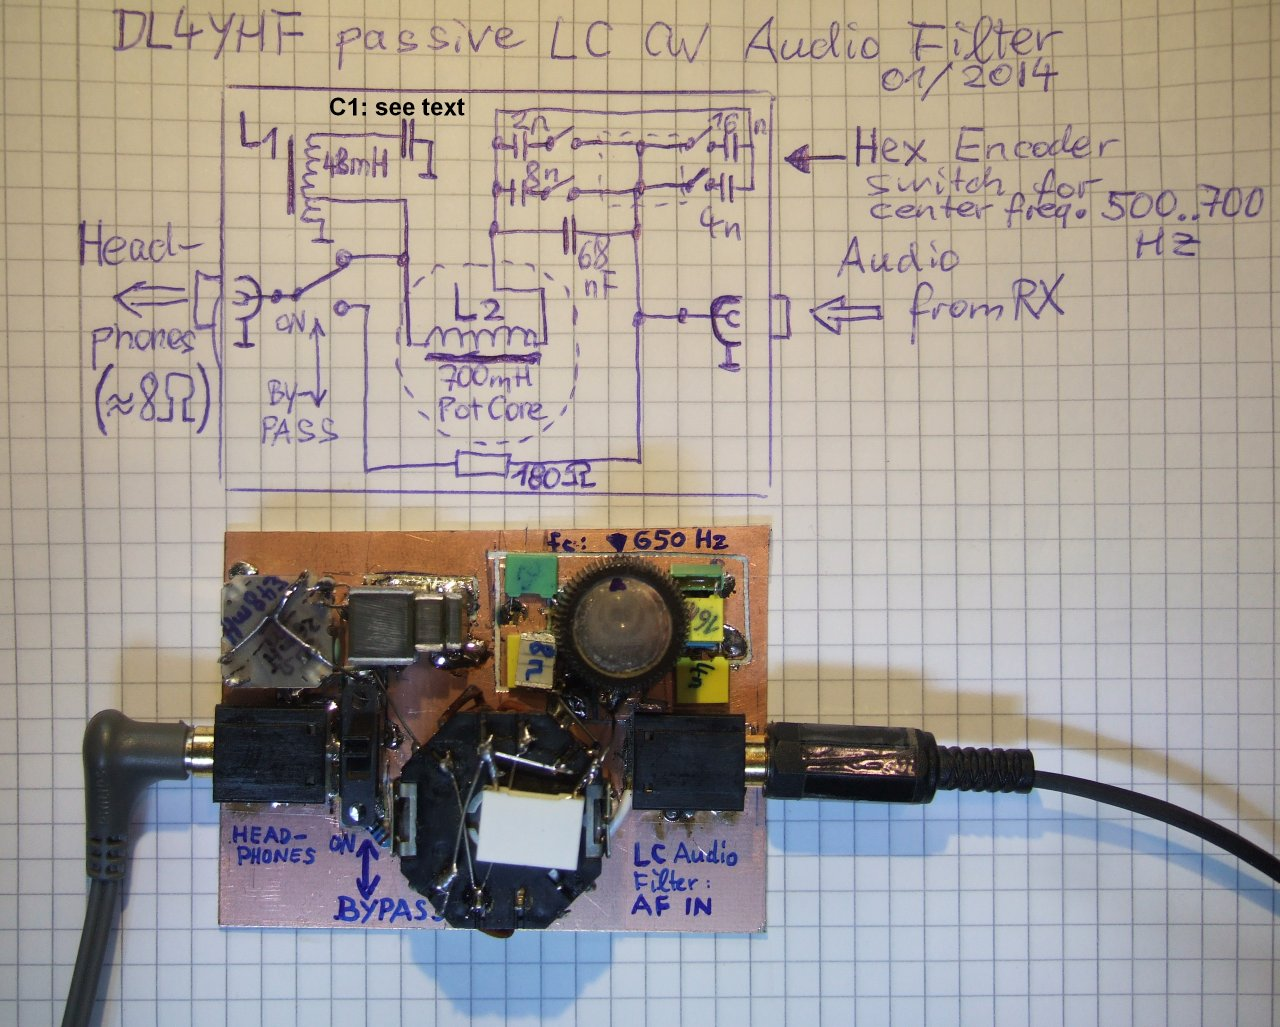 Noise Filter Circuit Diagram Passive Lc Cw Audio Schematics And Prototype Of The